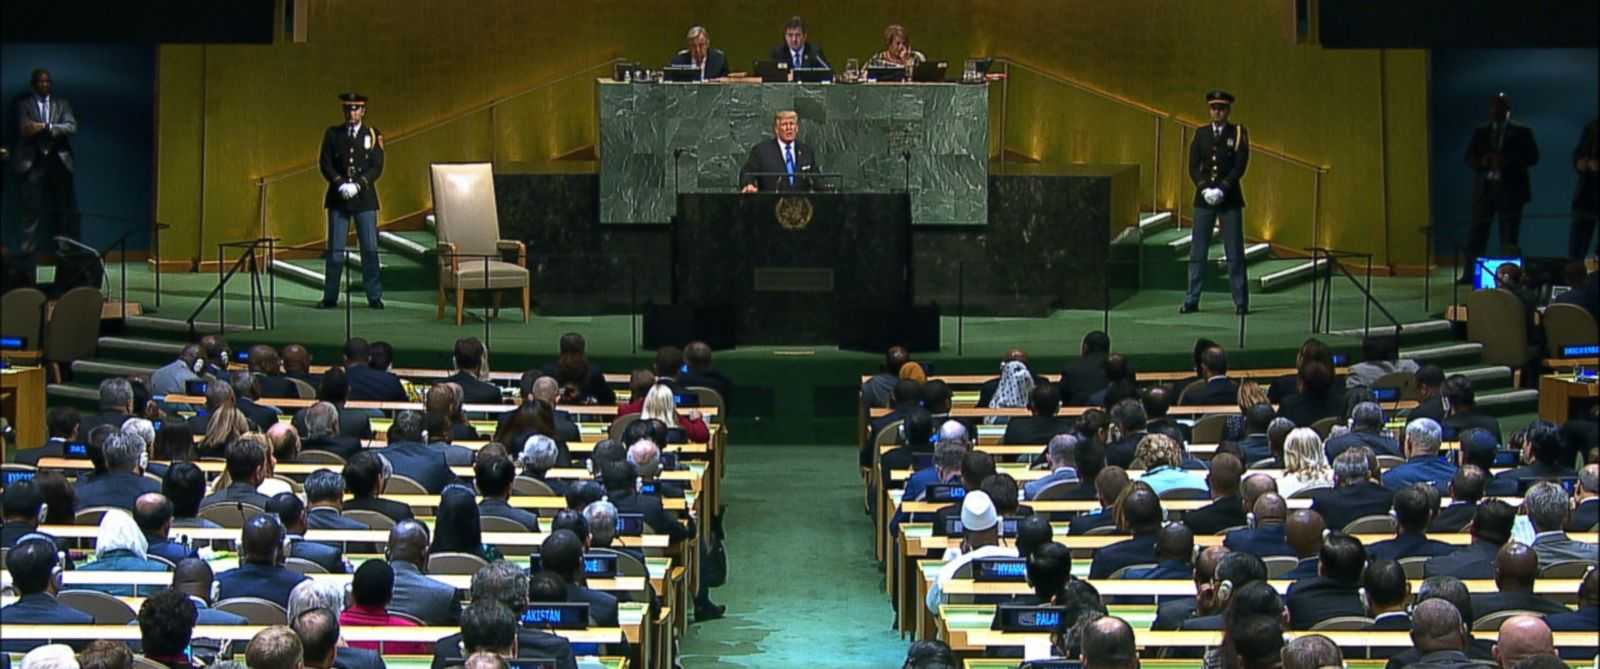 """From calling Kim Jong Un a """"rocket man on a suicide mission"""" to saying Iran is a """"murderous regime,"""" here are the biggest moments from President Donald Trump's speech to the United Nations General Assembly."""